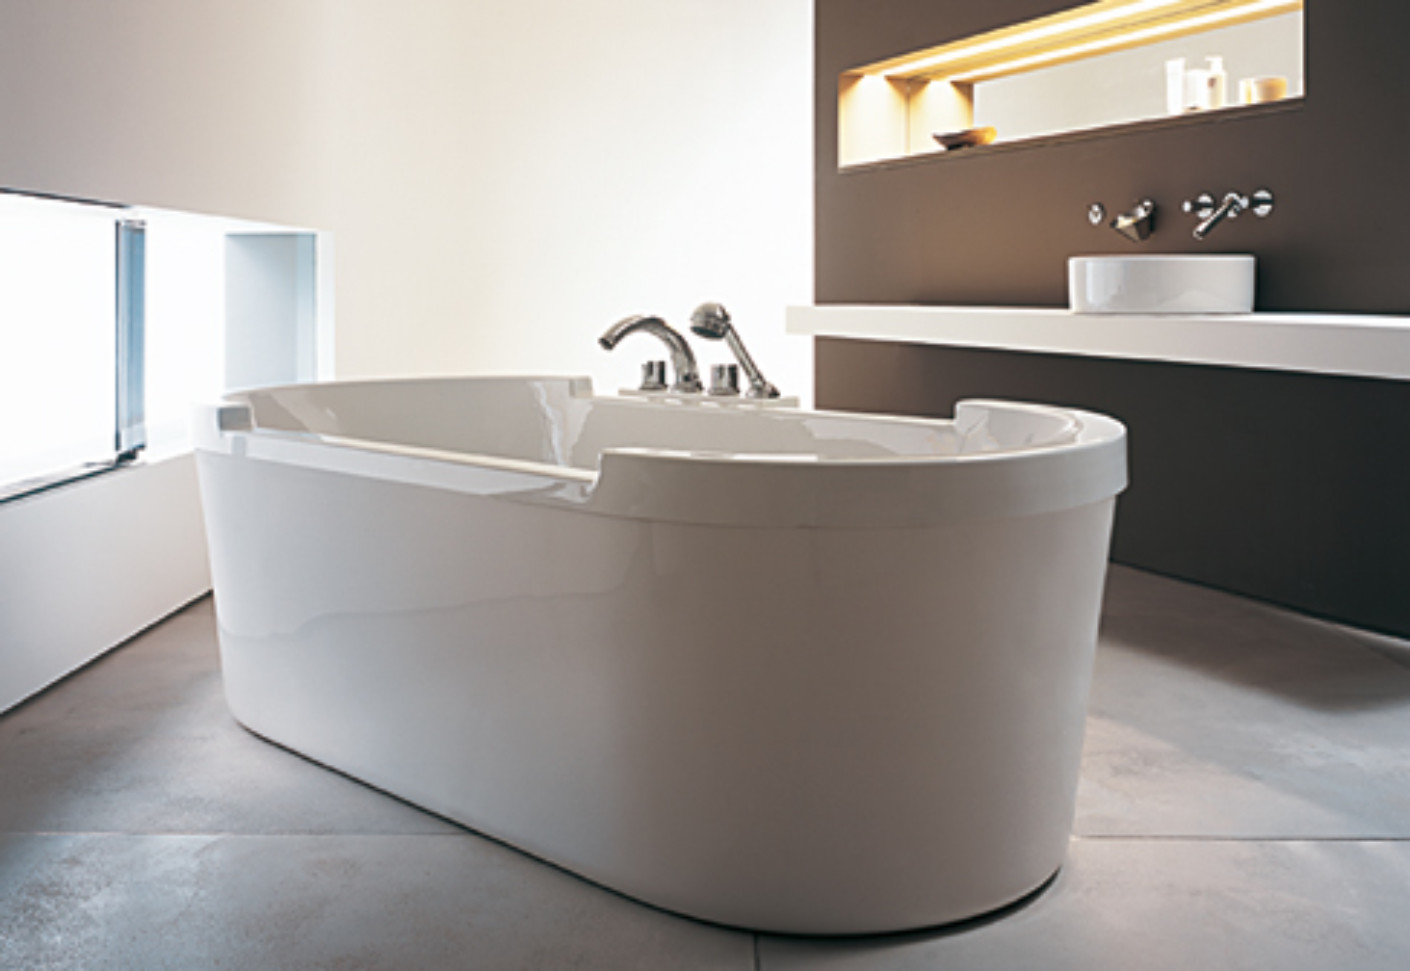 h tub en from by bathtub duravit cover architonic shelves product